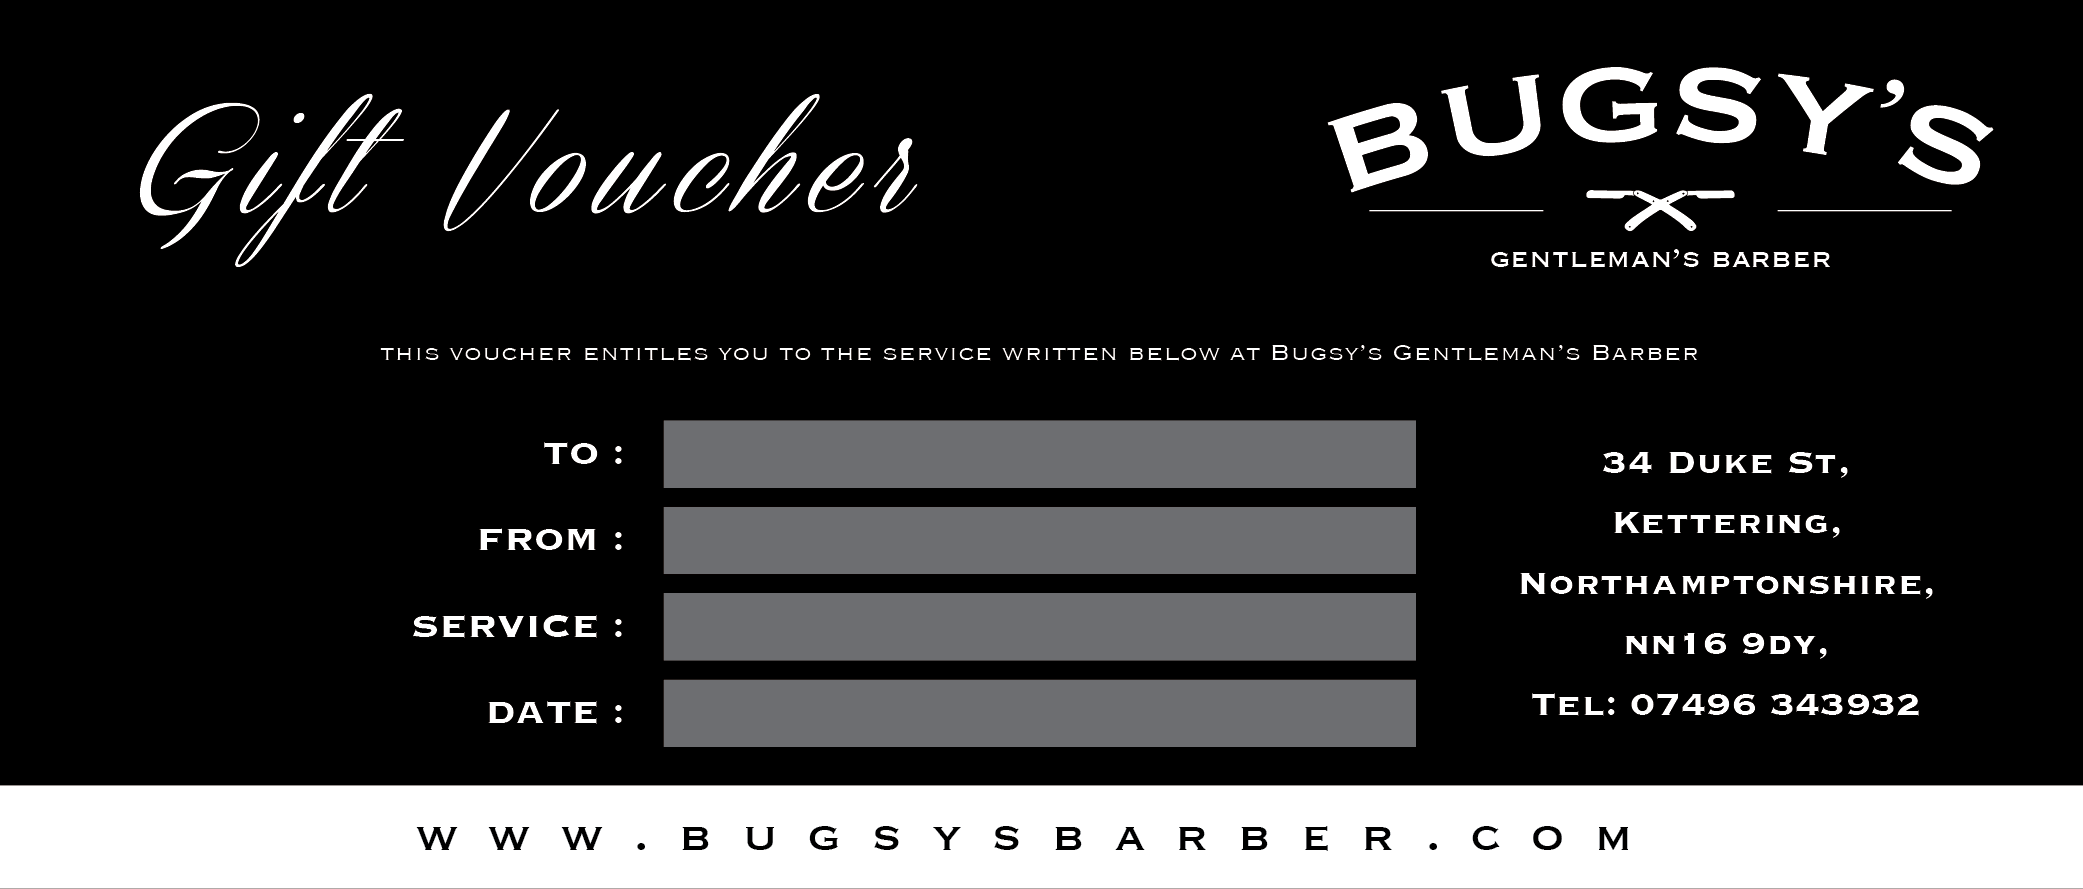 Bugsys Barber Gift Vouchers Mens Haircuts In Kettering